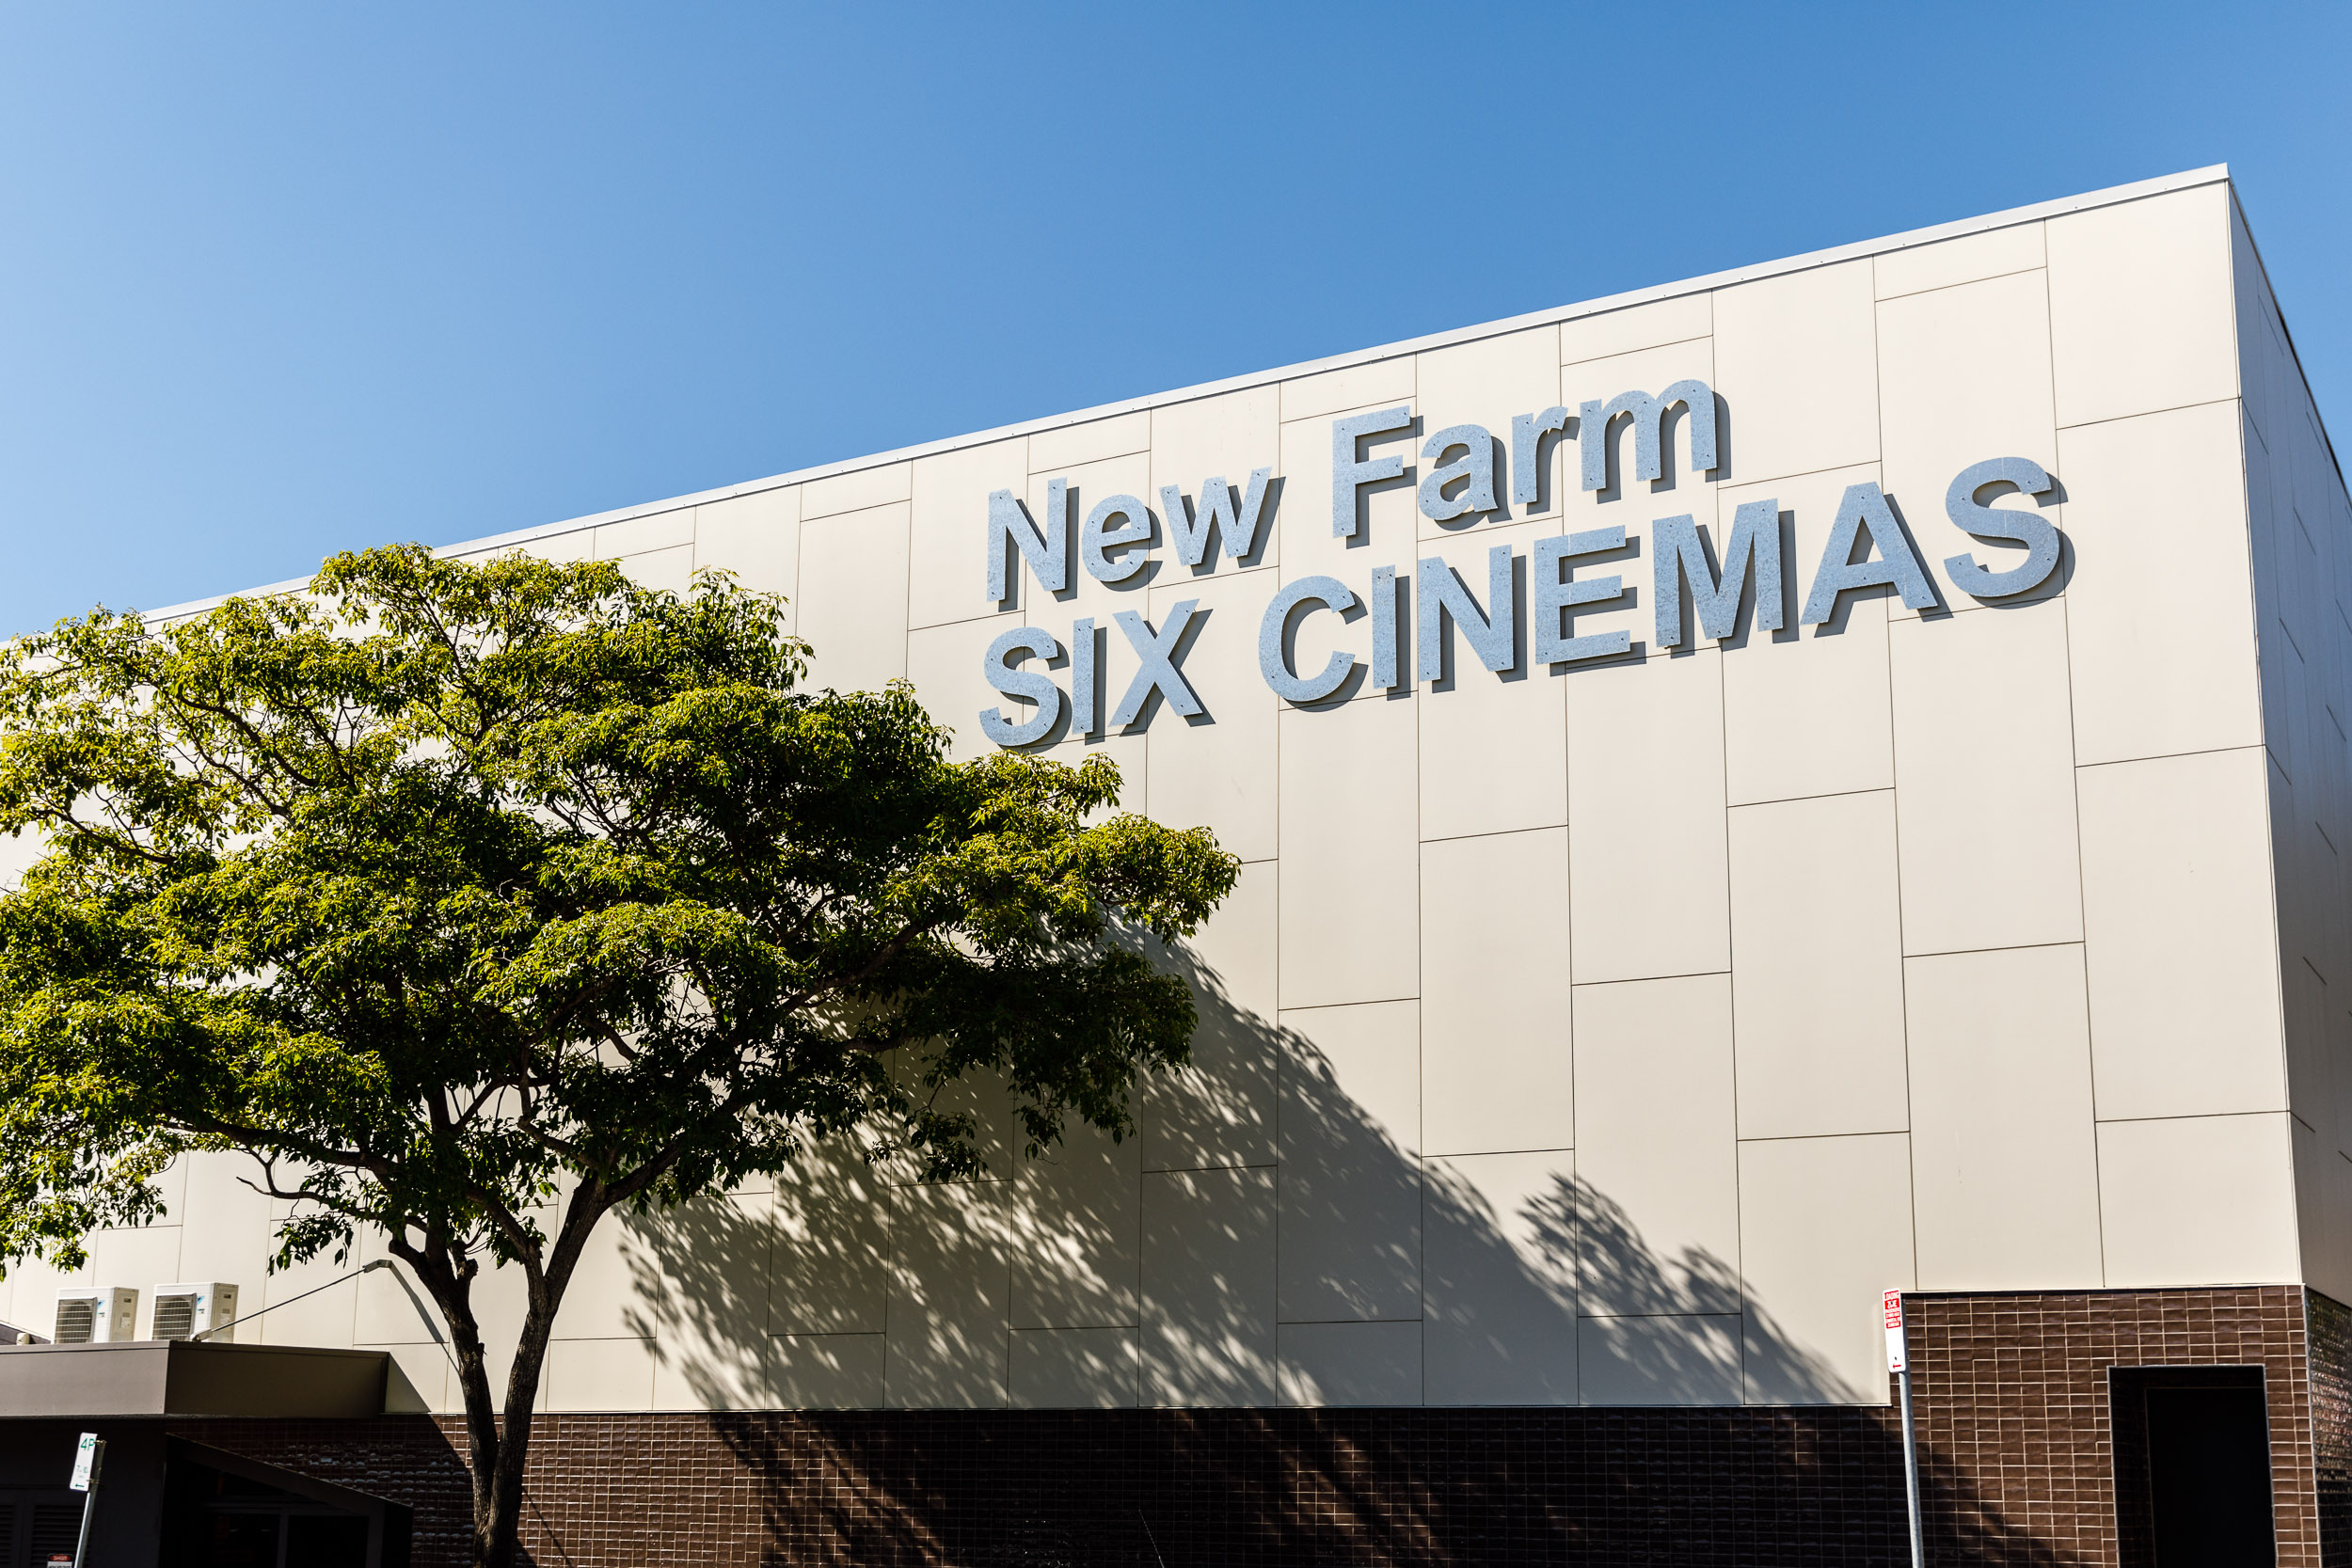 New Farm Six Cinemas (150m)